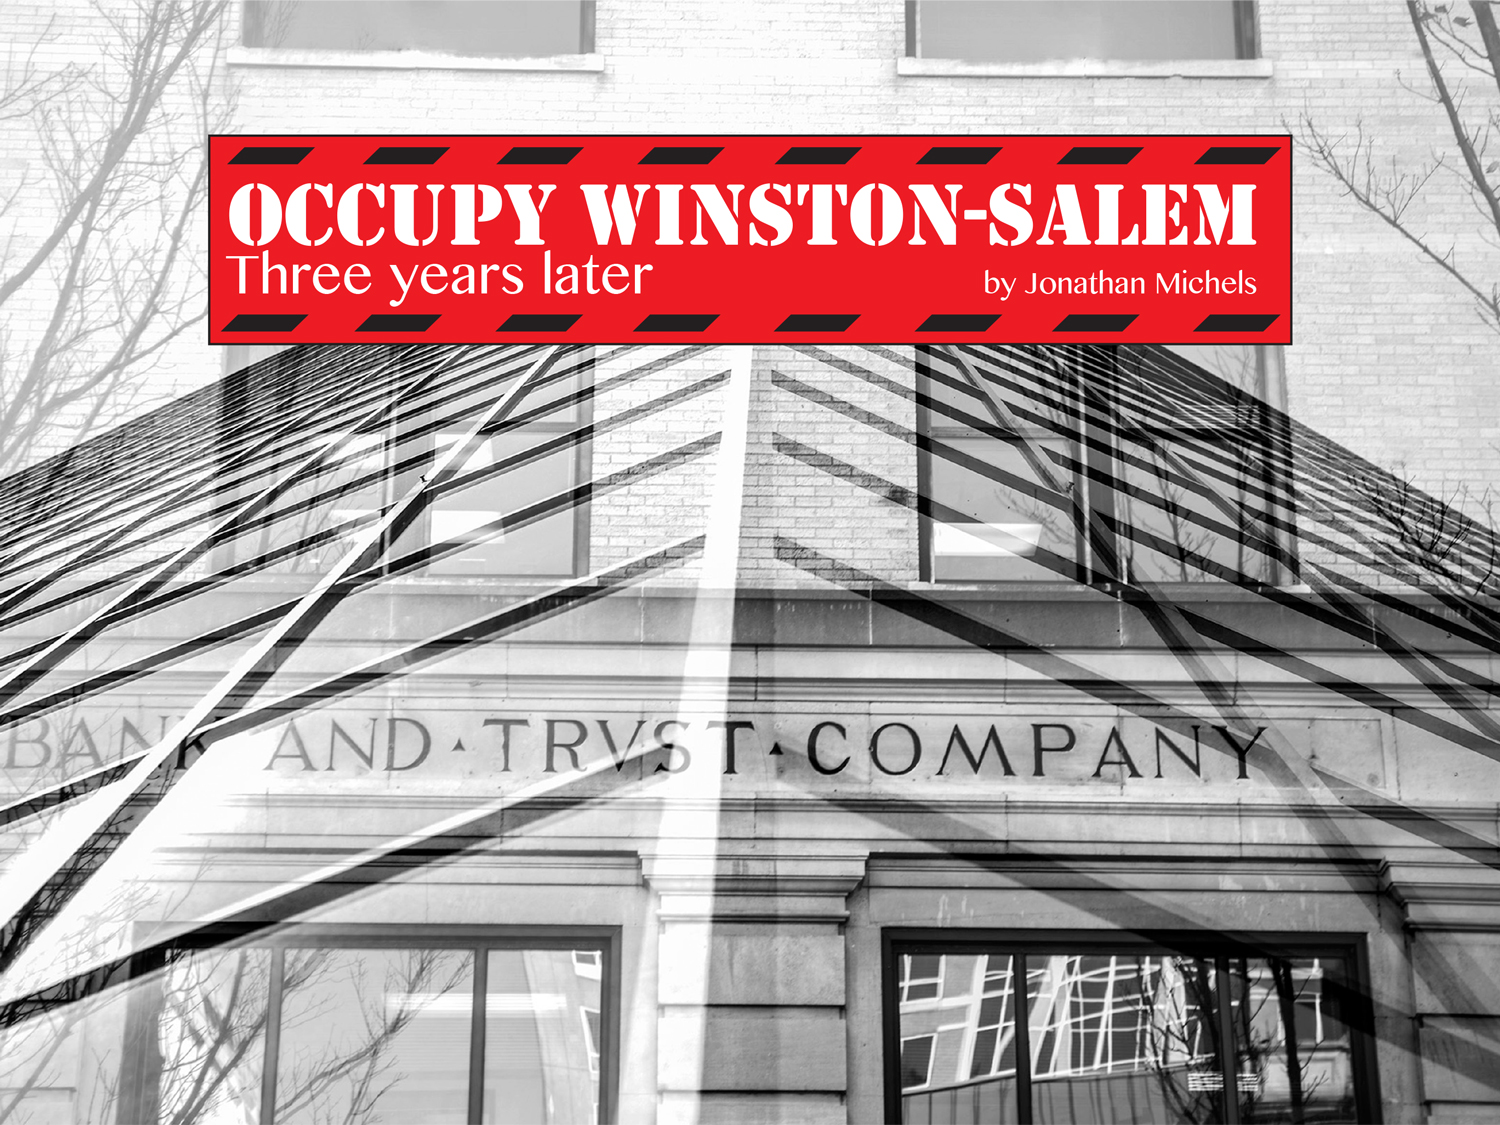 occupy winston m three years later the nc triad s altweekly by jonathan michels